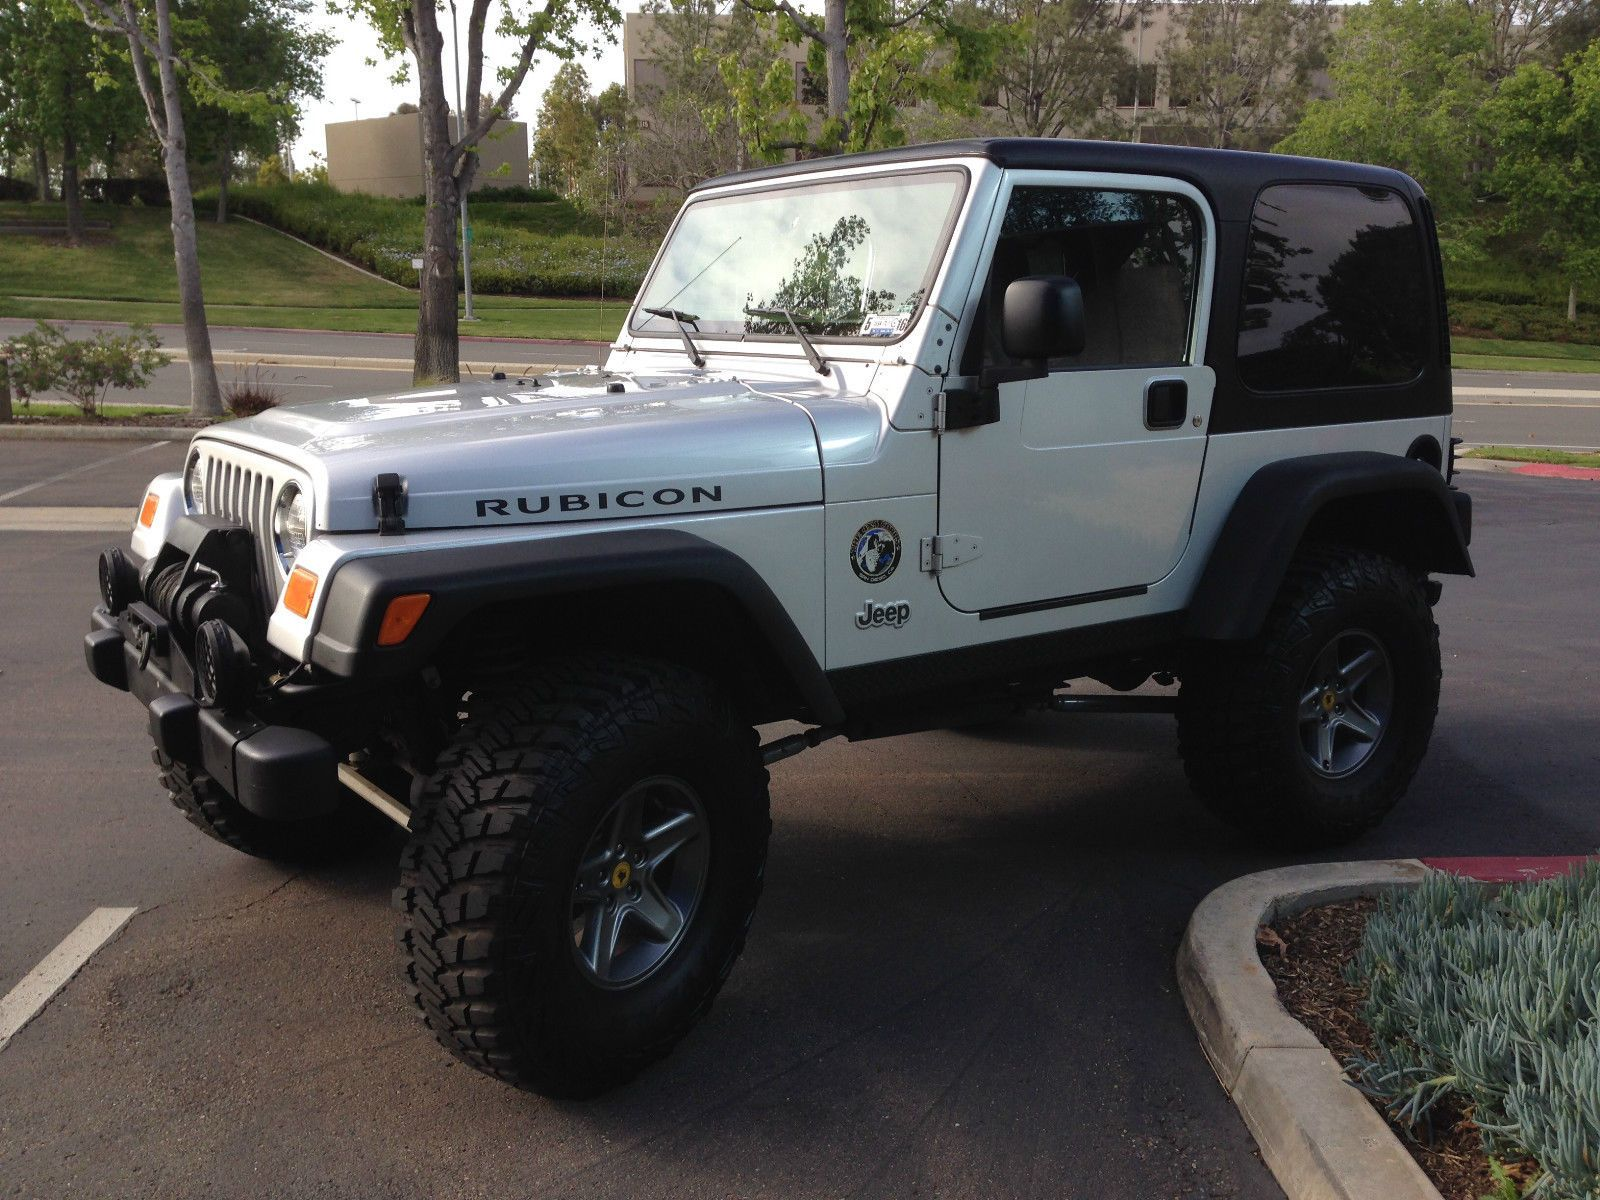 37s On A 2 Door Jkowners Com Jeep Wrangler Jk Forum Two Door Jeep Wrangler Jeep Wrangler Jk Jeep Wrangler